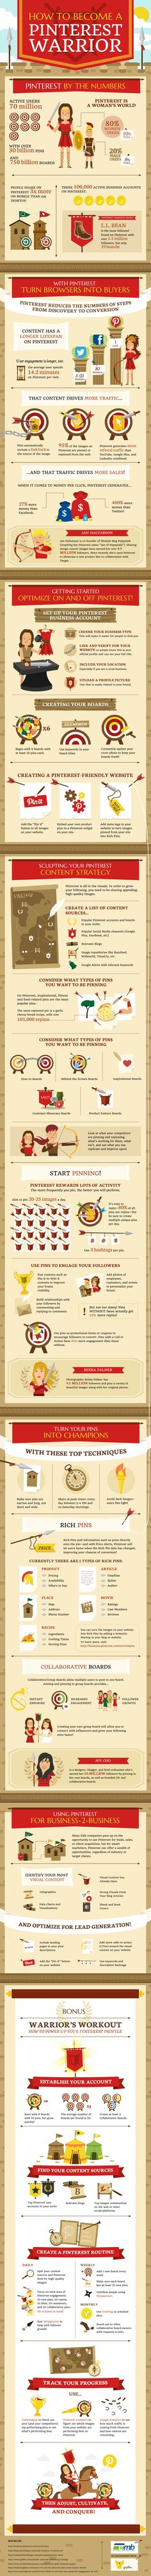 Become a Pinterest Warrior and Boost Your Brand [Infographic]j